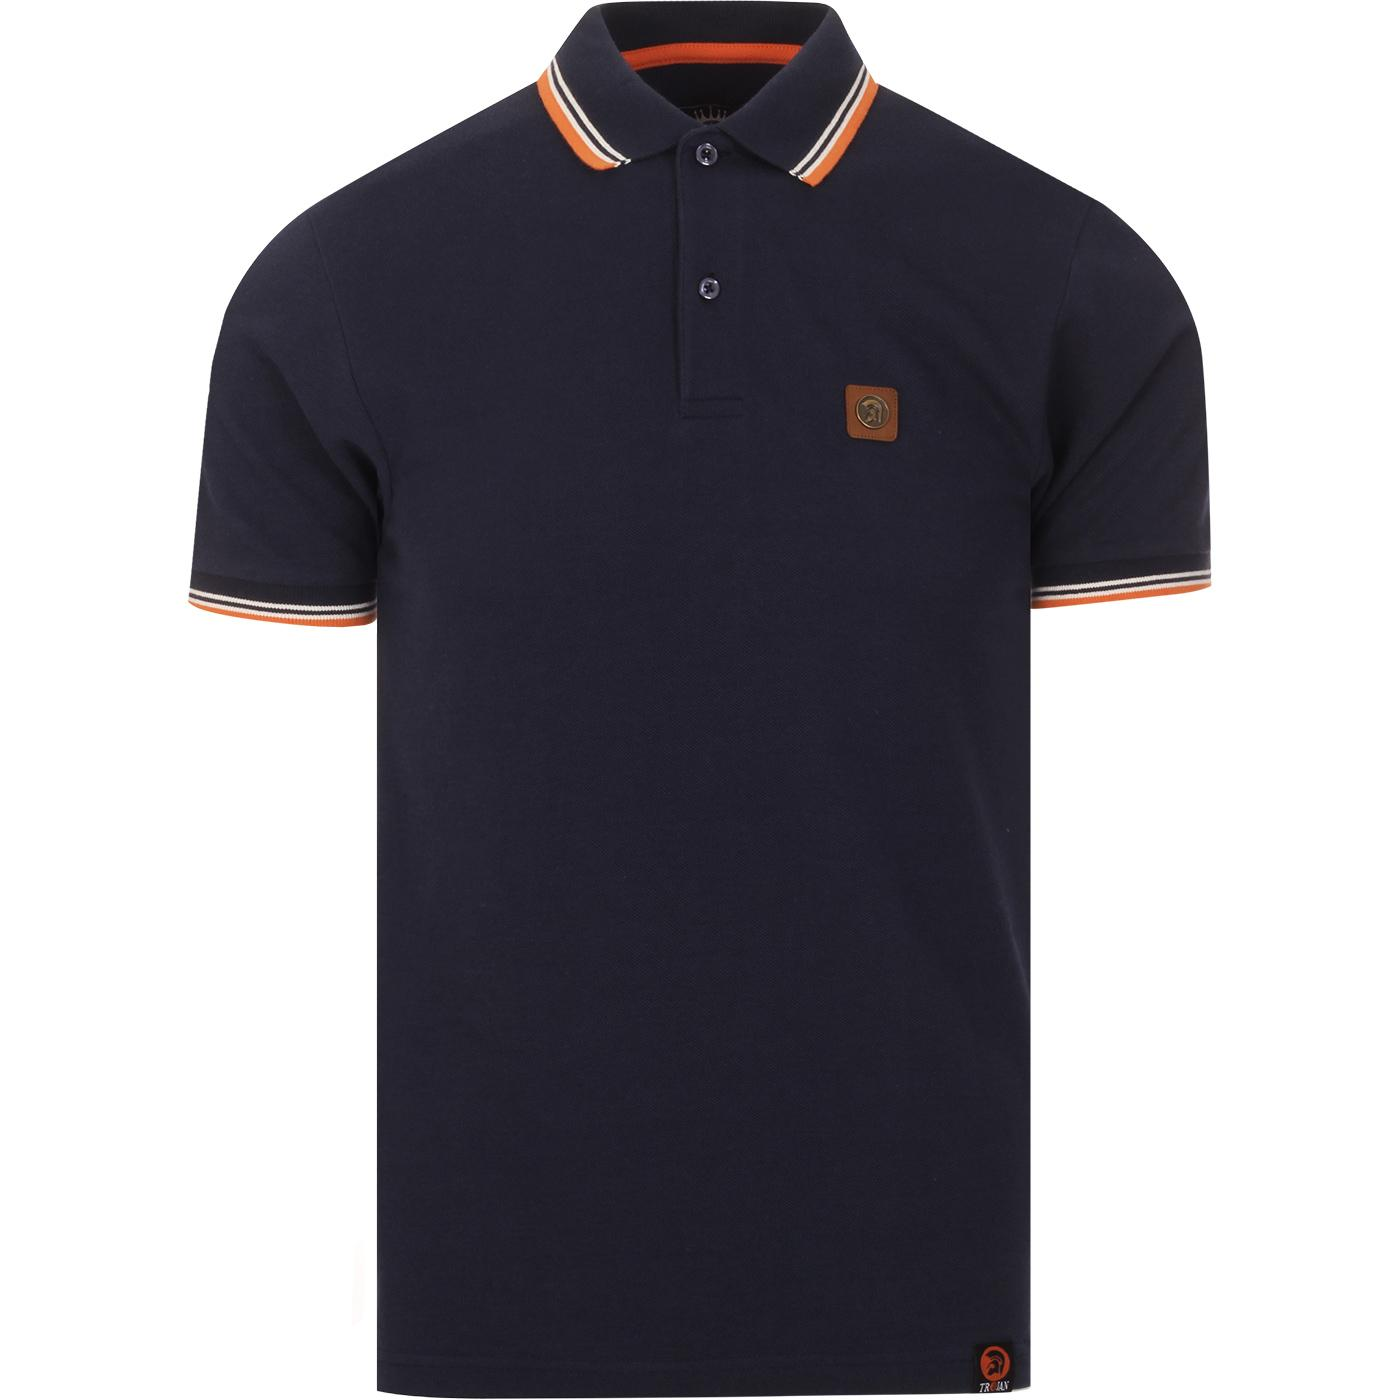 TROJAN RECORDS Mens Mod Ska Tipped Pique Polo NAVY